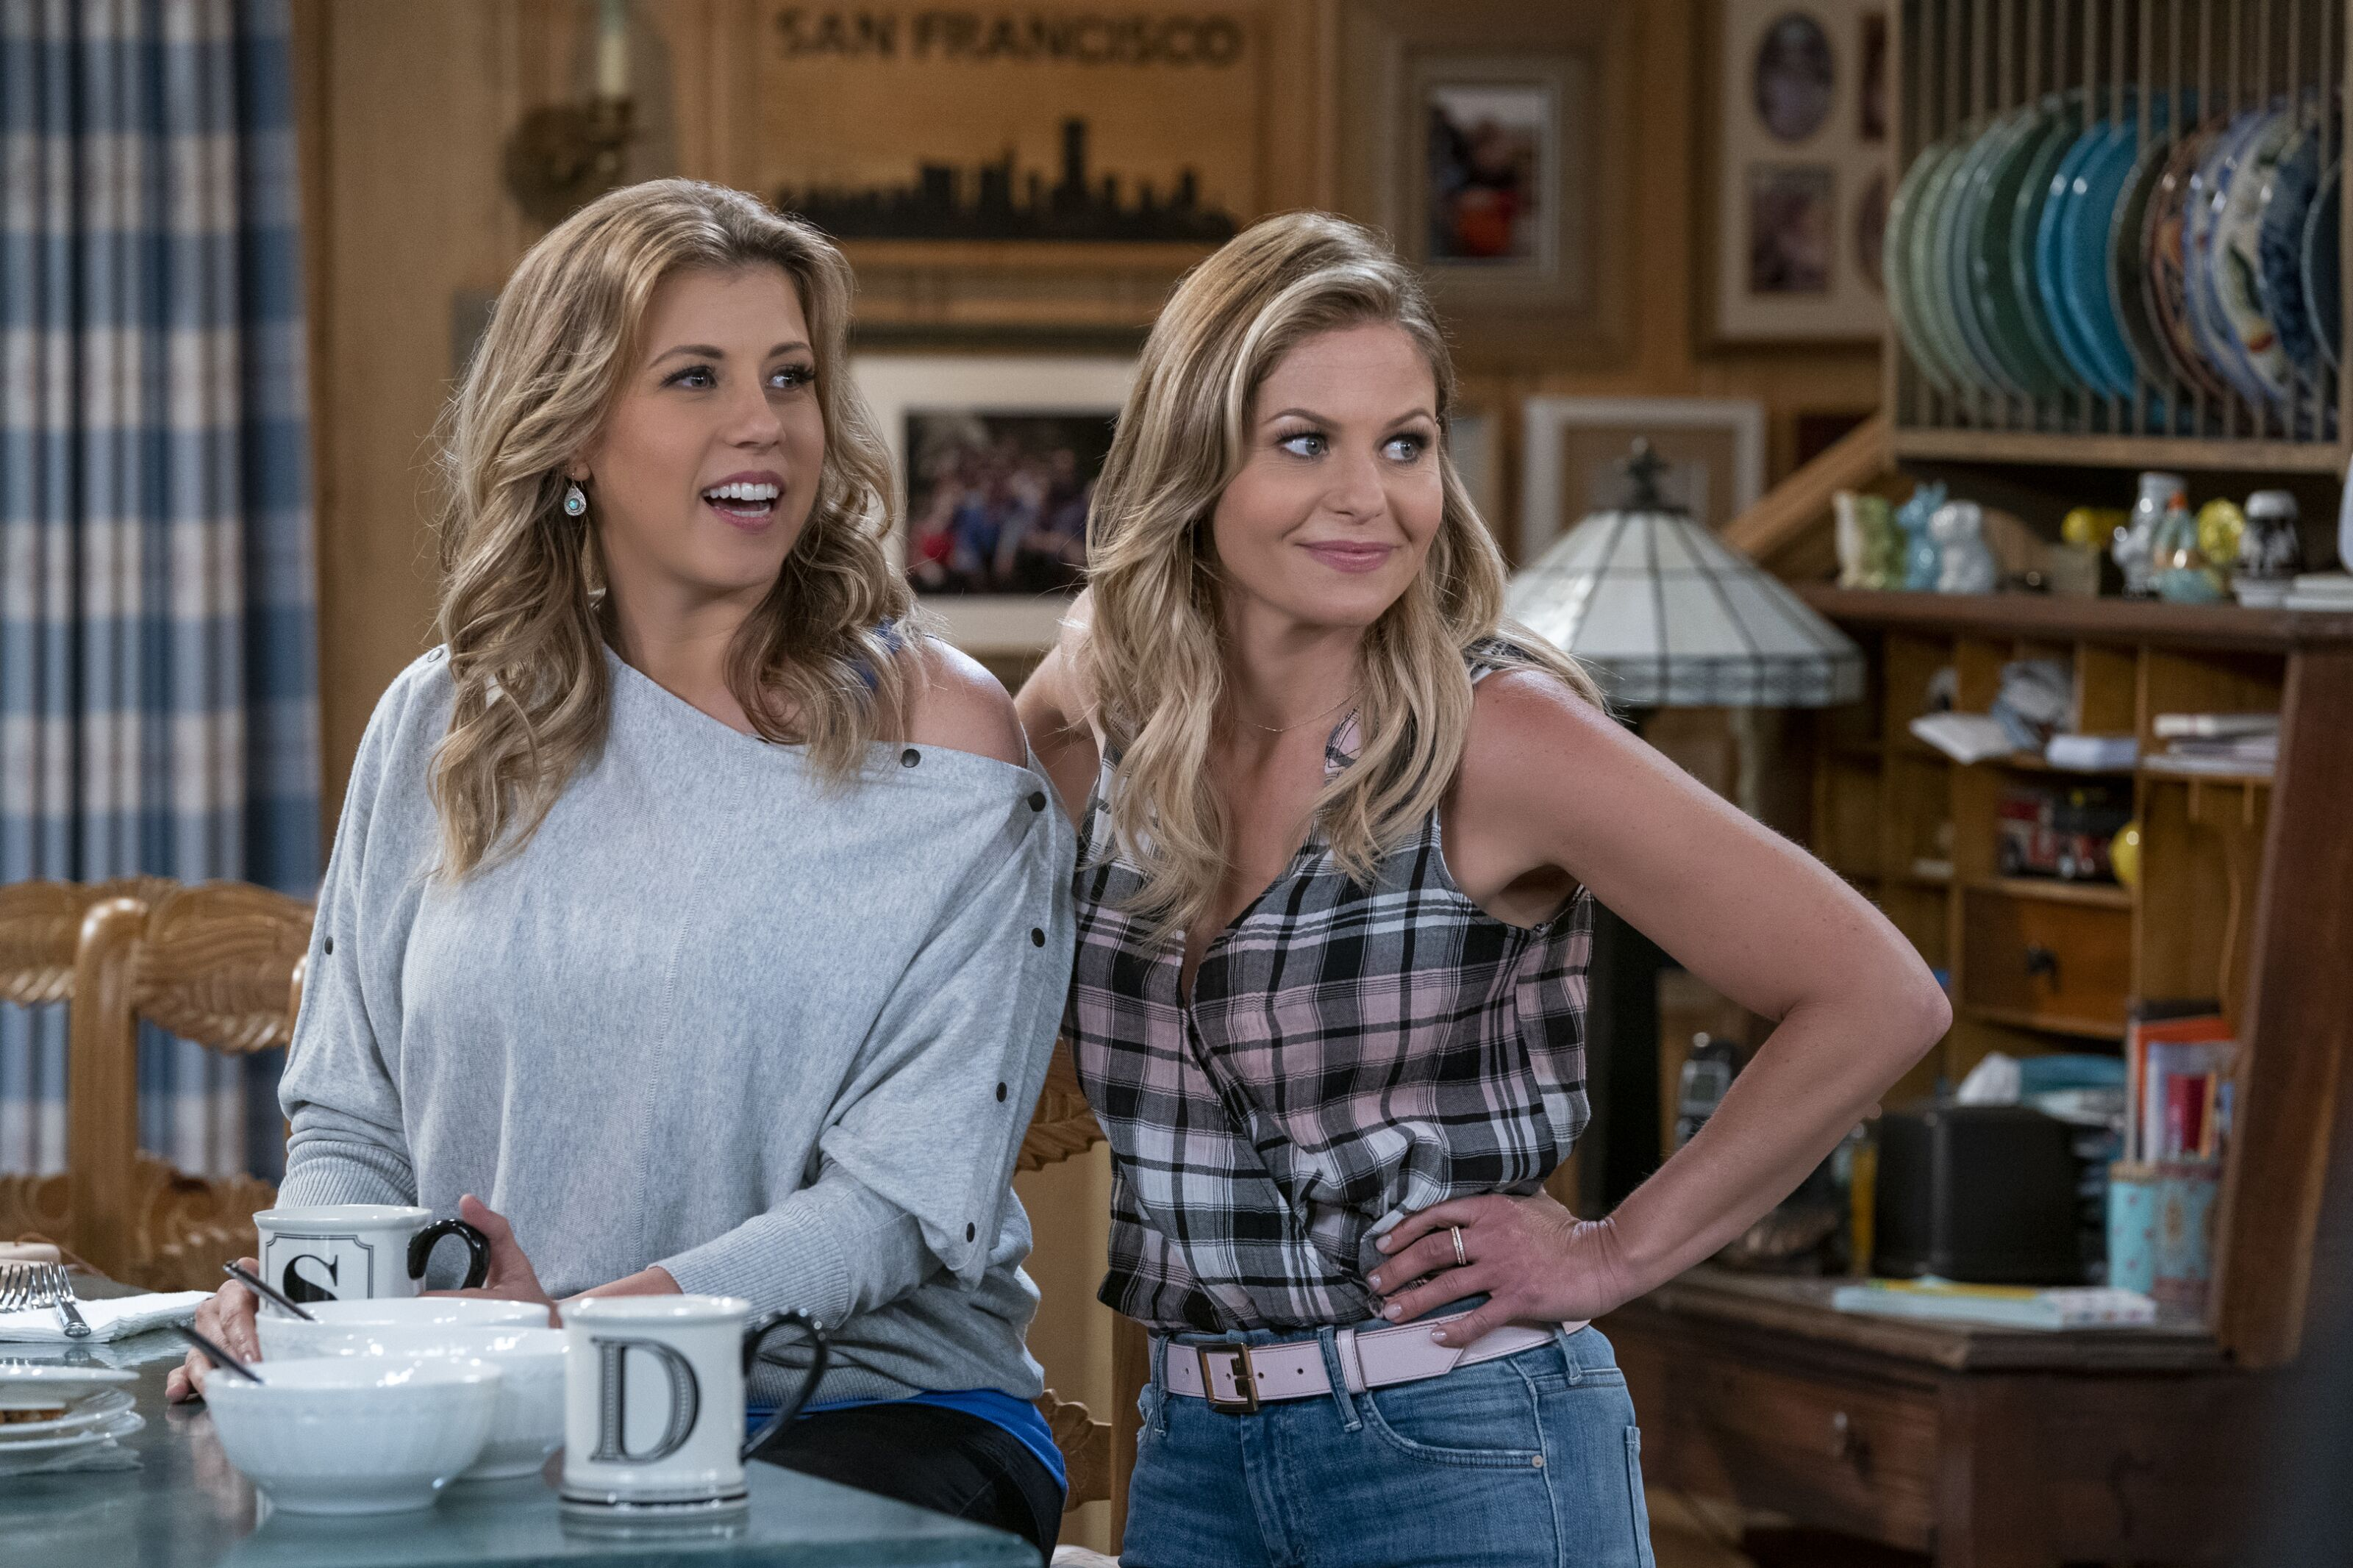 Fuller House and 5 good Netflix shows to watch this weekend: Dec. 7-8